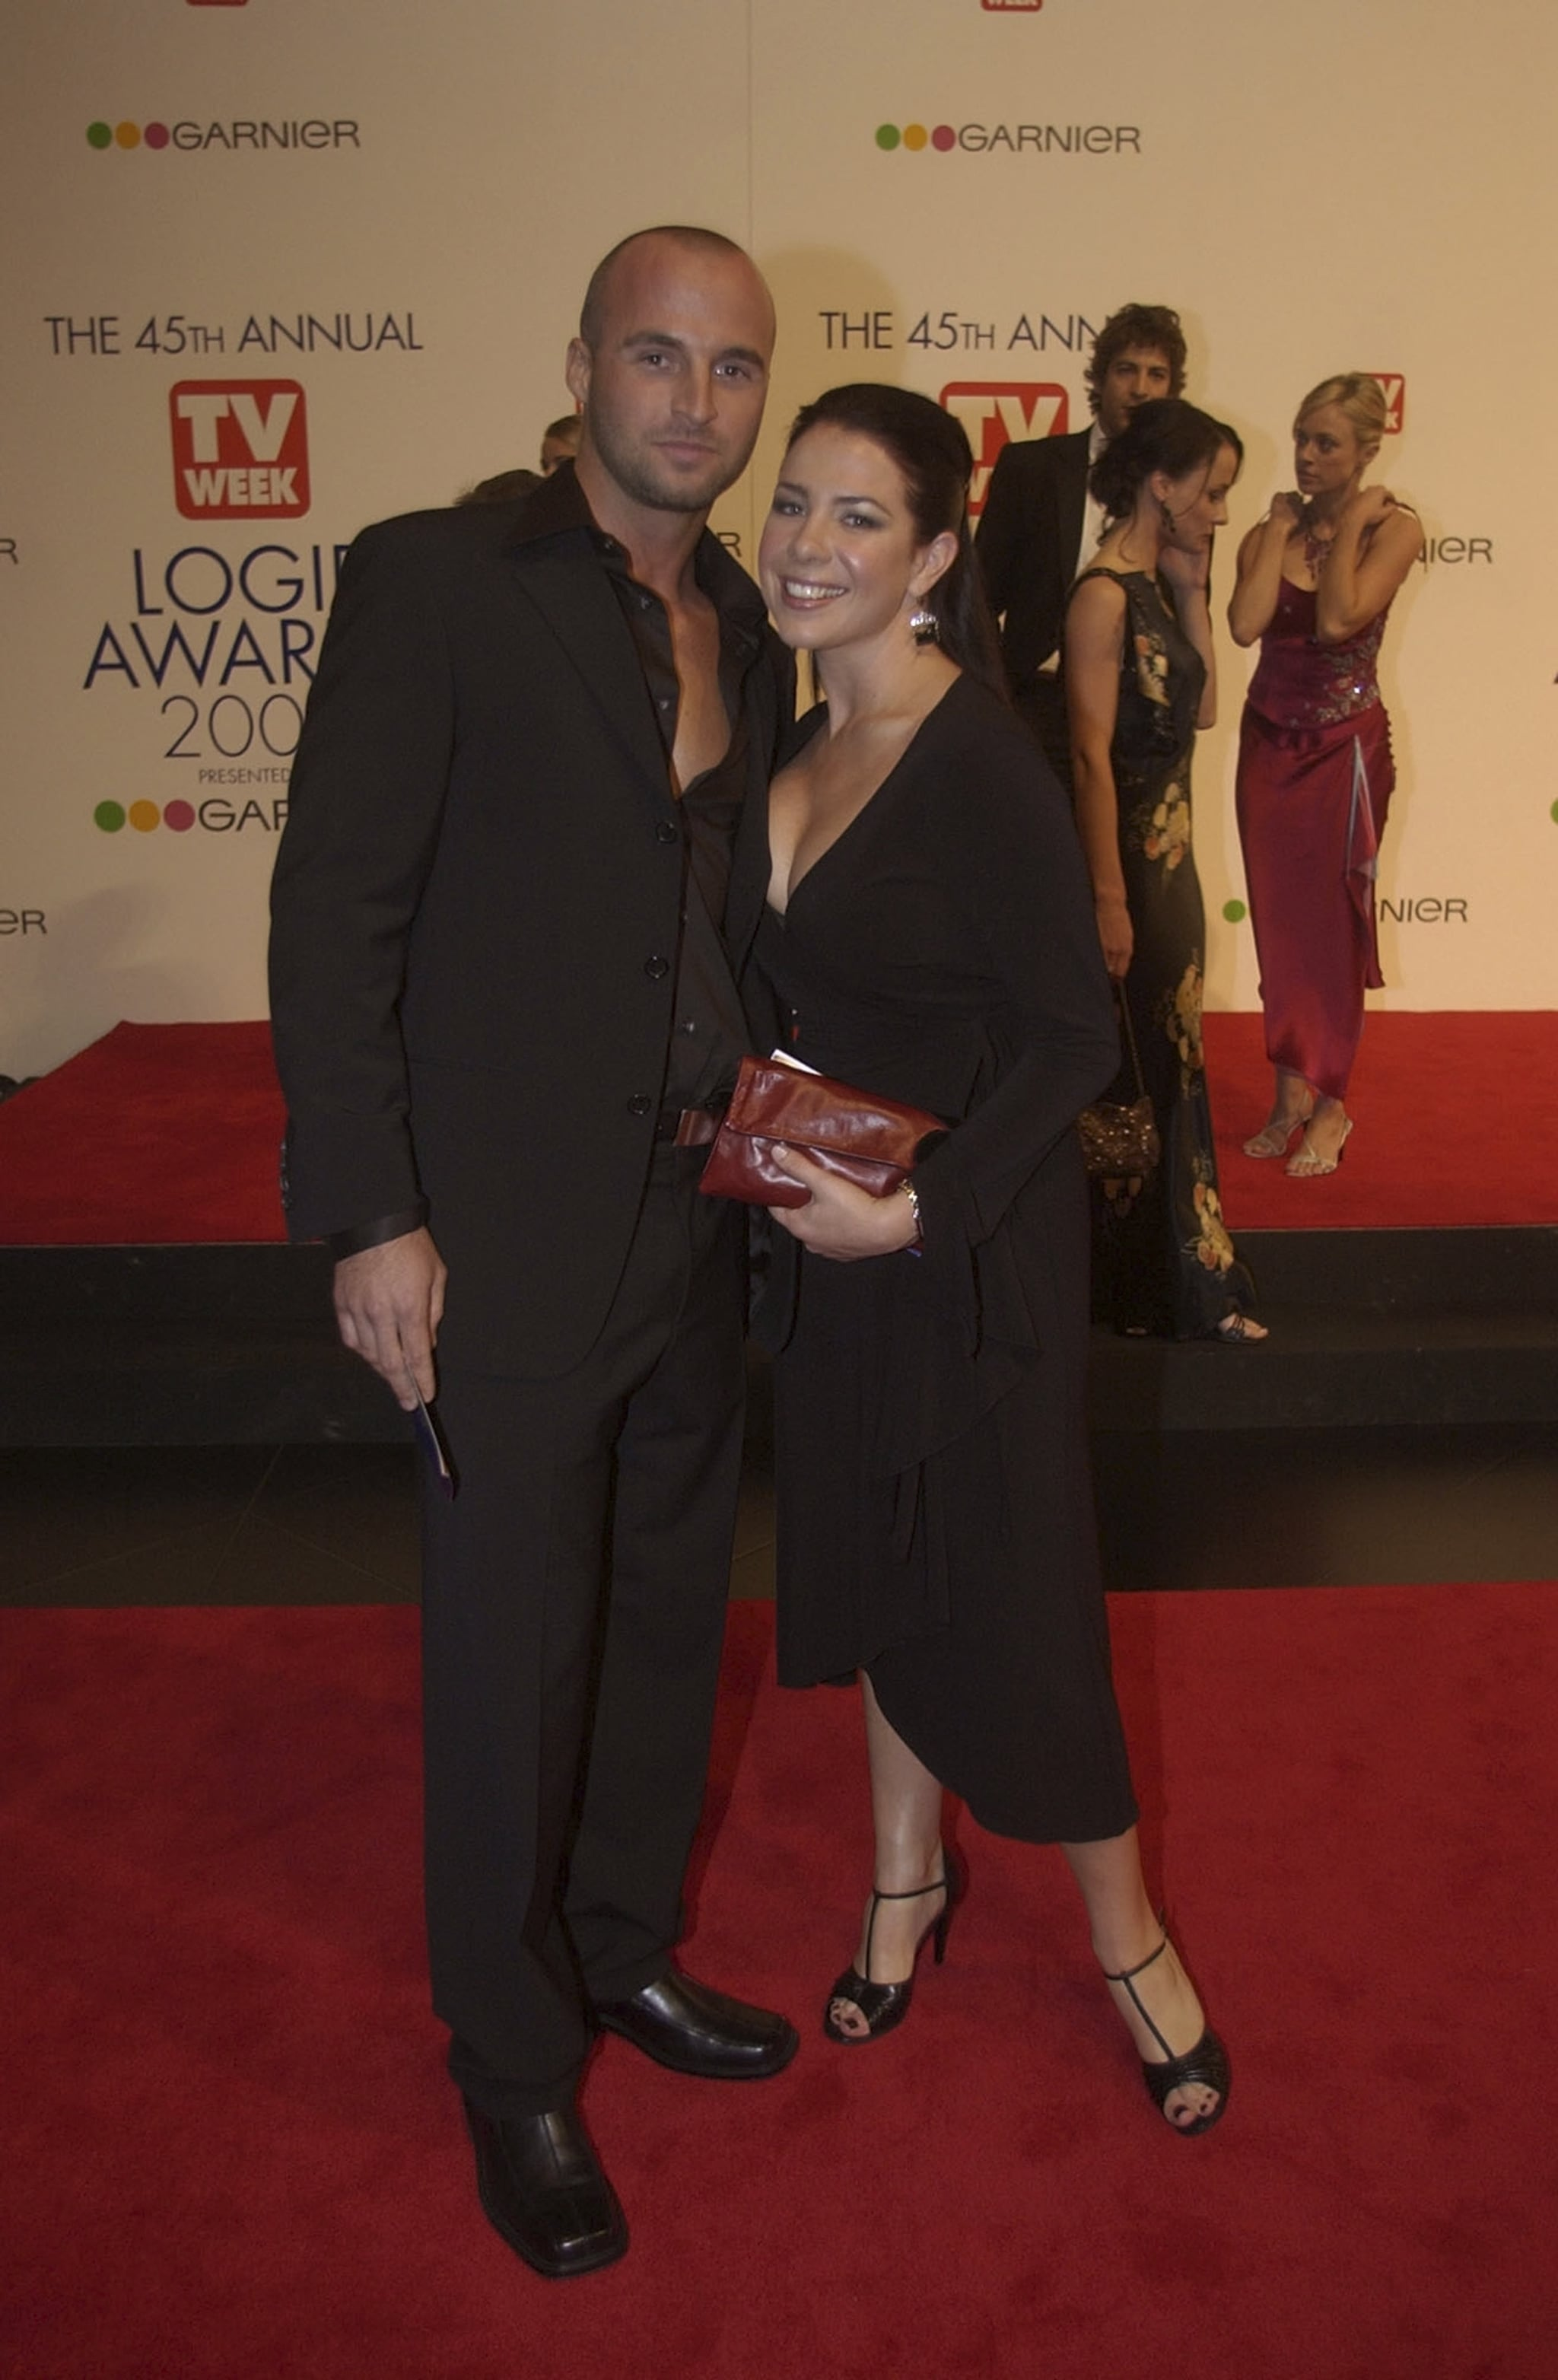 MELBOURNE - MAY 11:  Ben Unwin and Kate Ritchie arriving on the red carpet for the 45th Annual TV Week Logie Awards 2003 held at the Crown Casino, Melbourne, Australia. (Photo by Patrick Riviere/Getty Images).